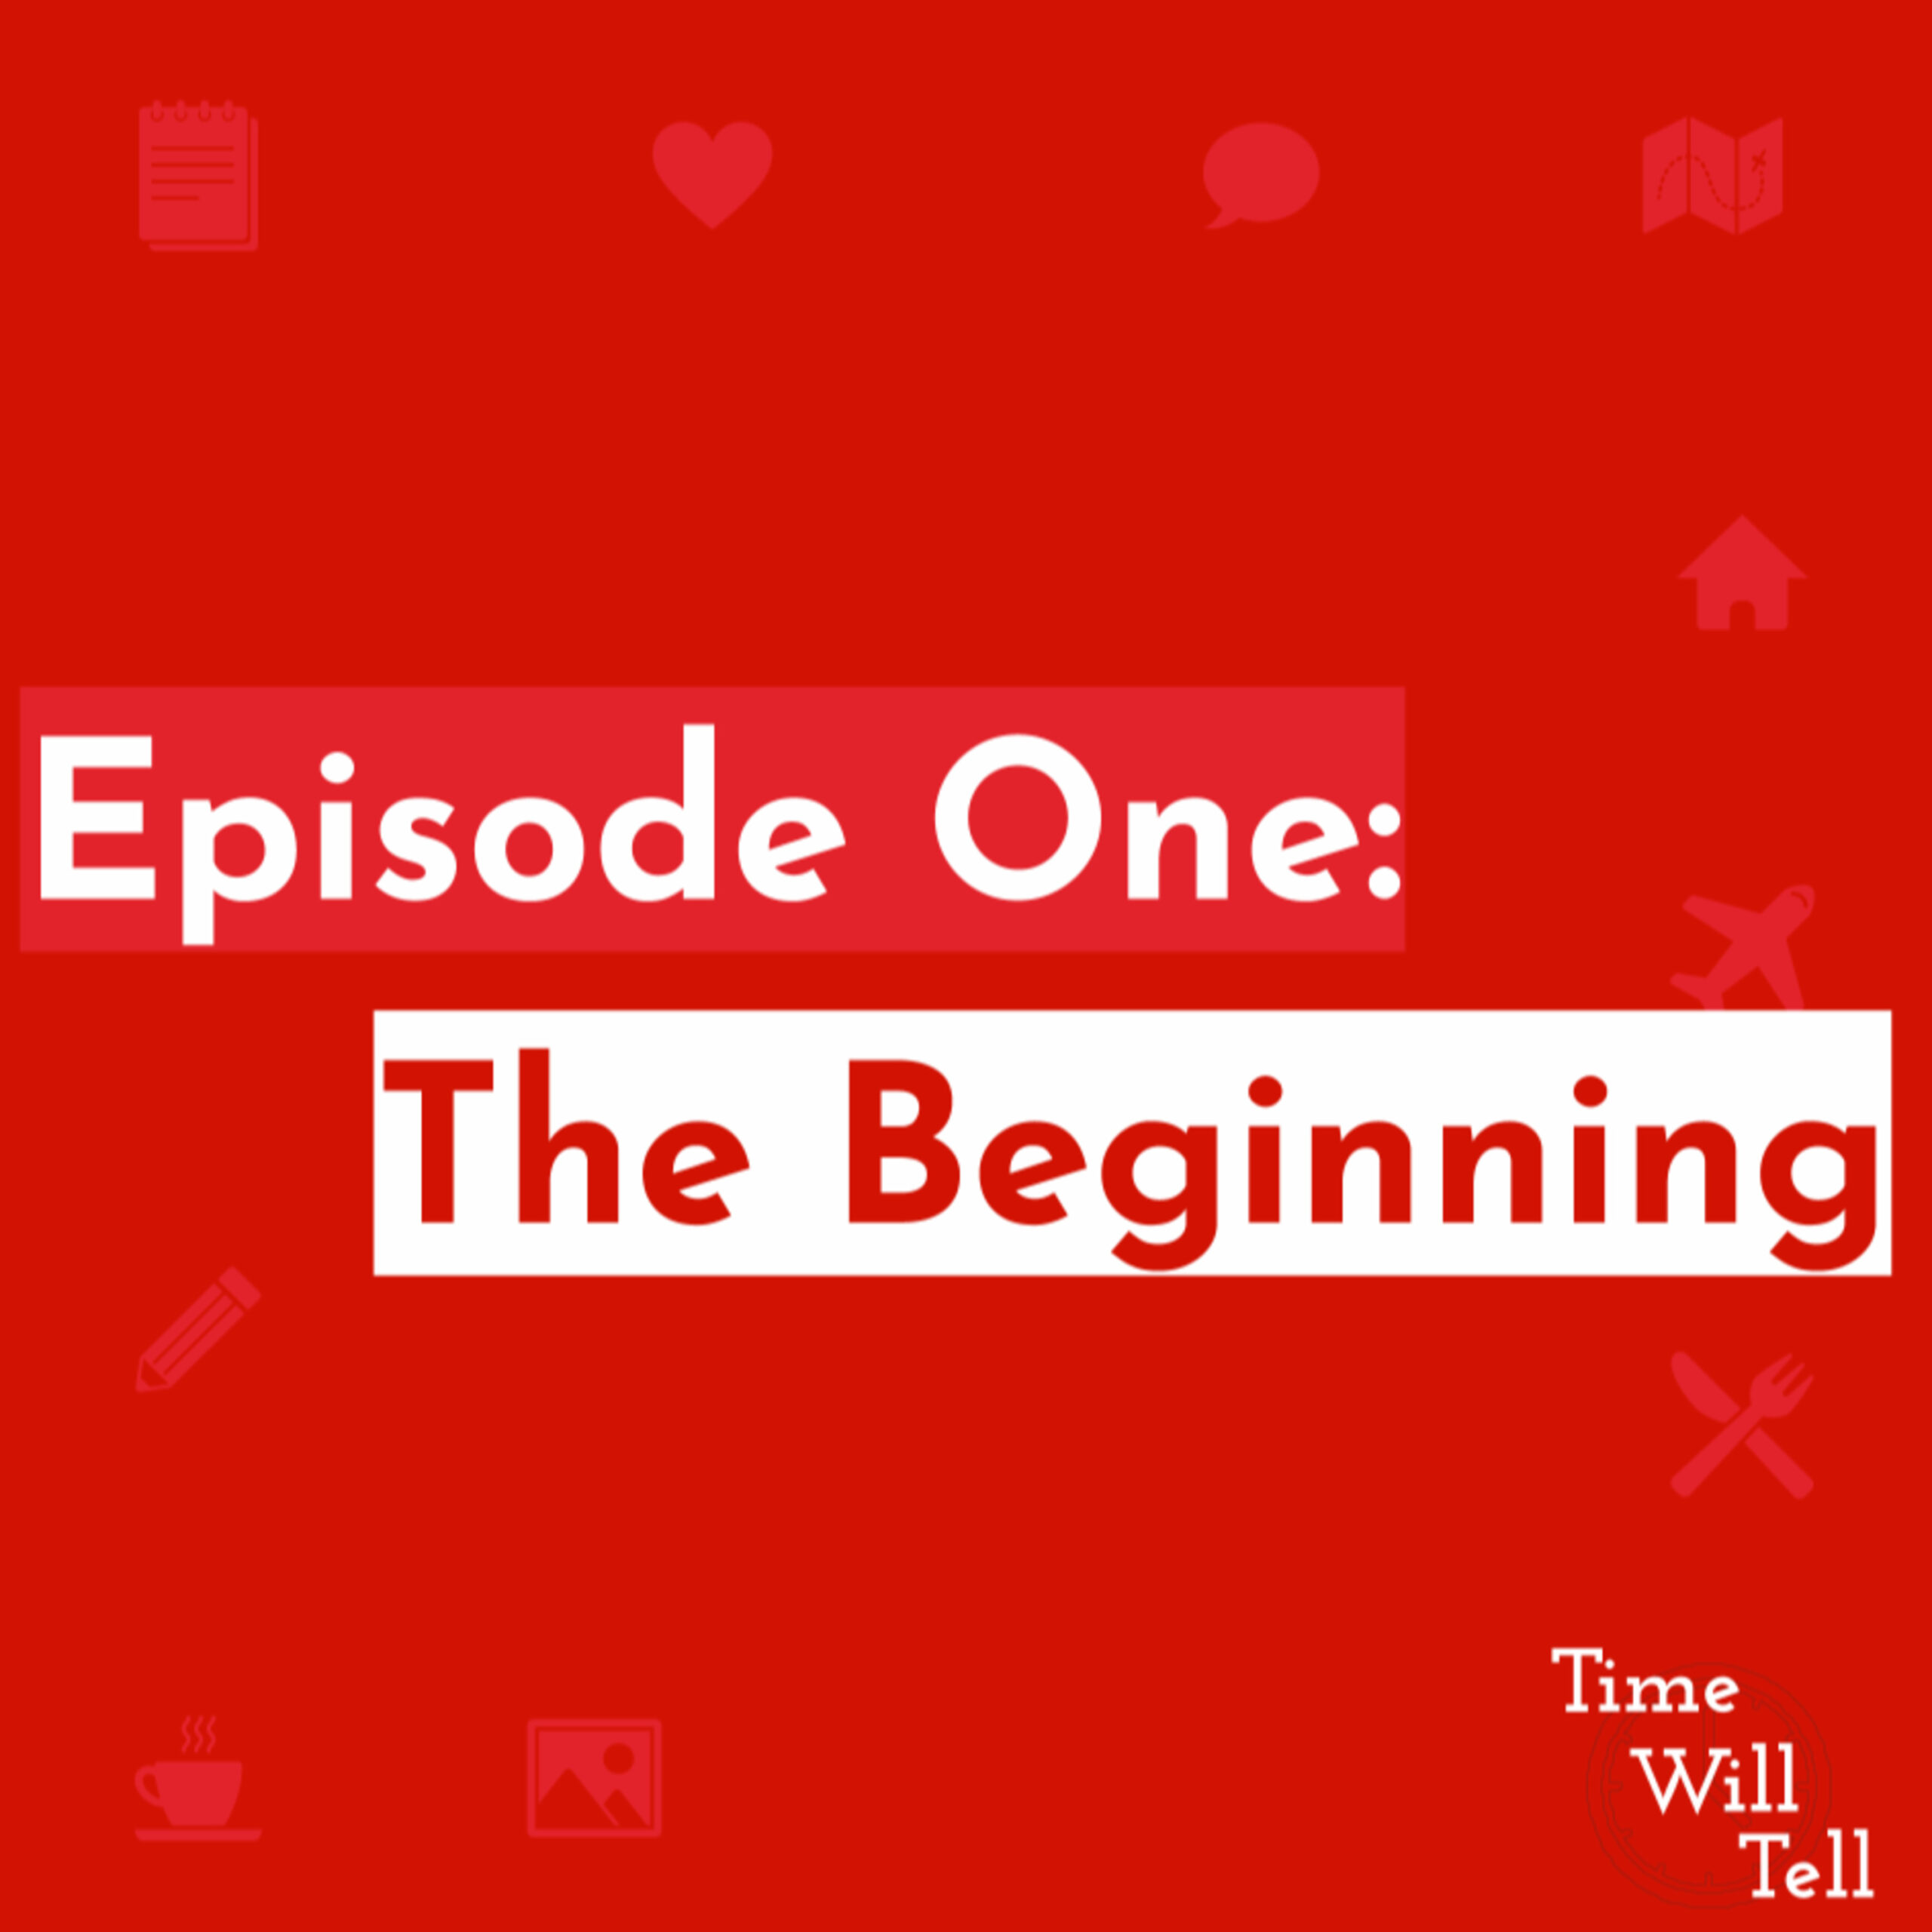 Episode One: The Beginning